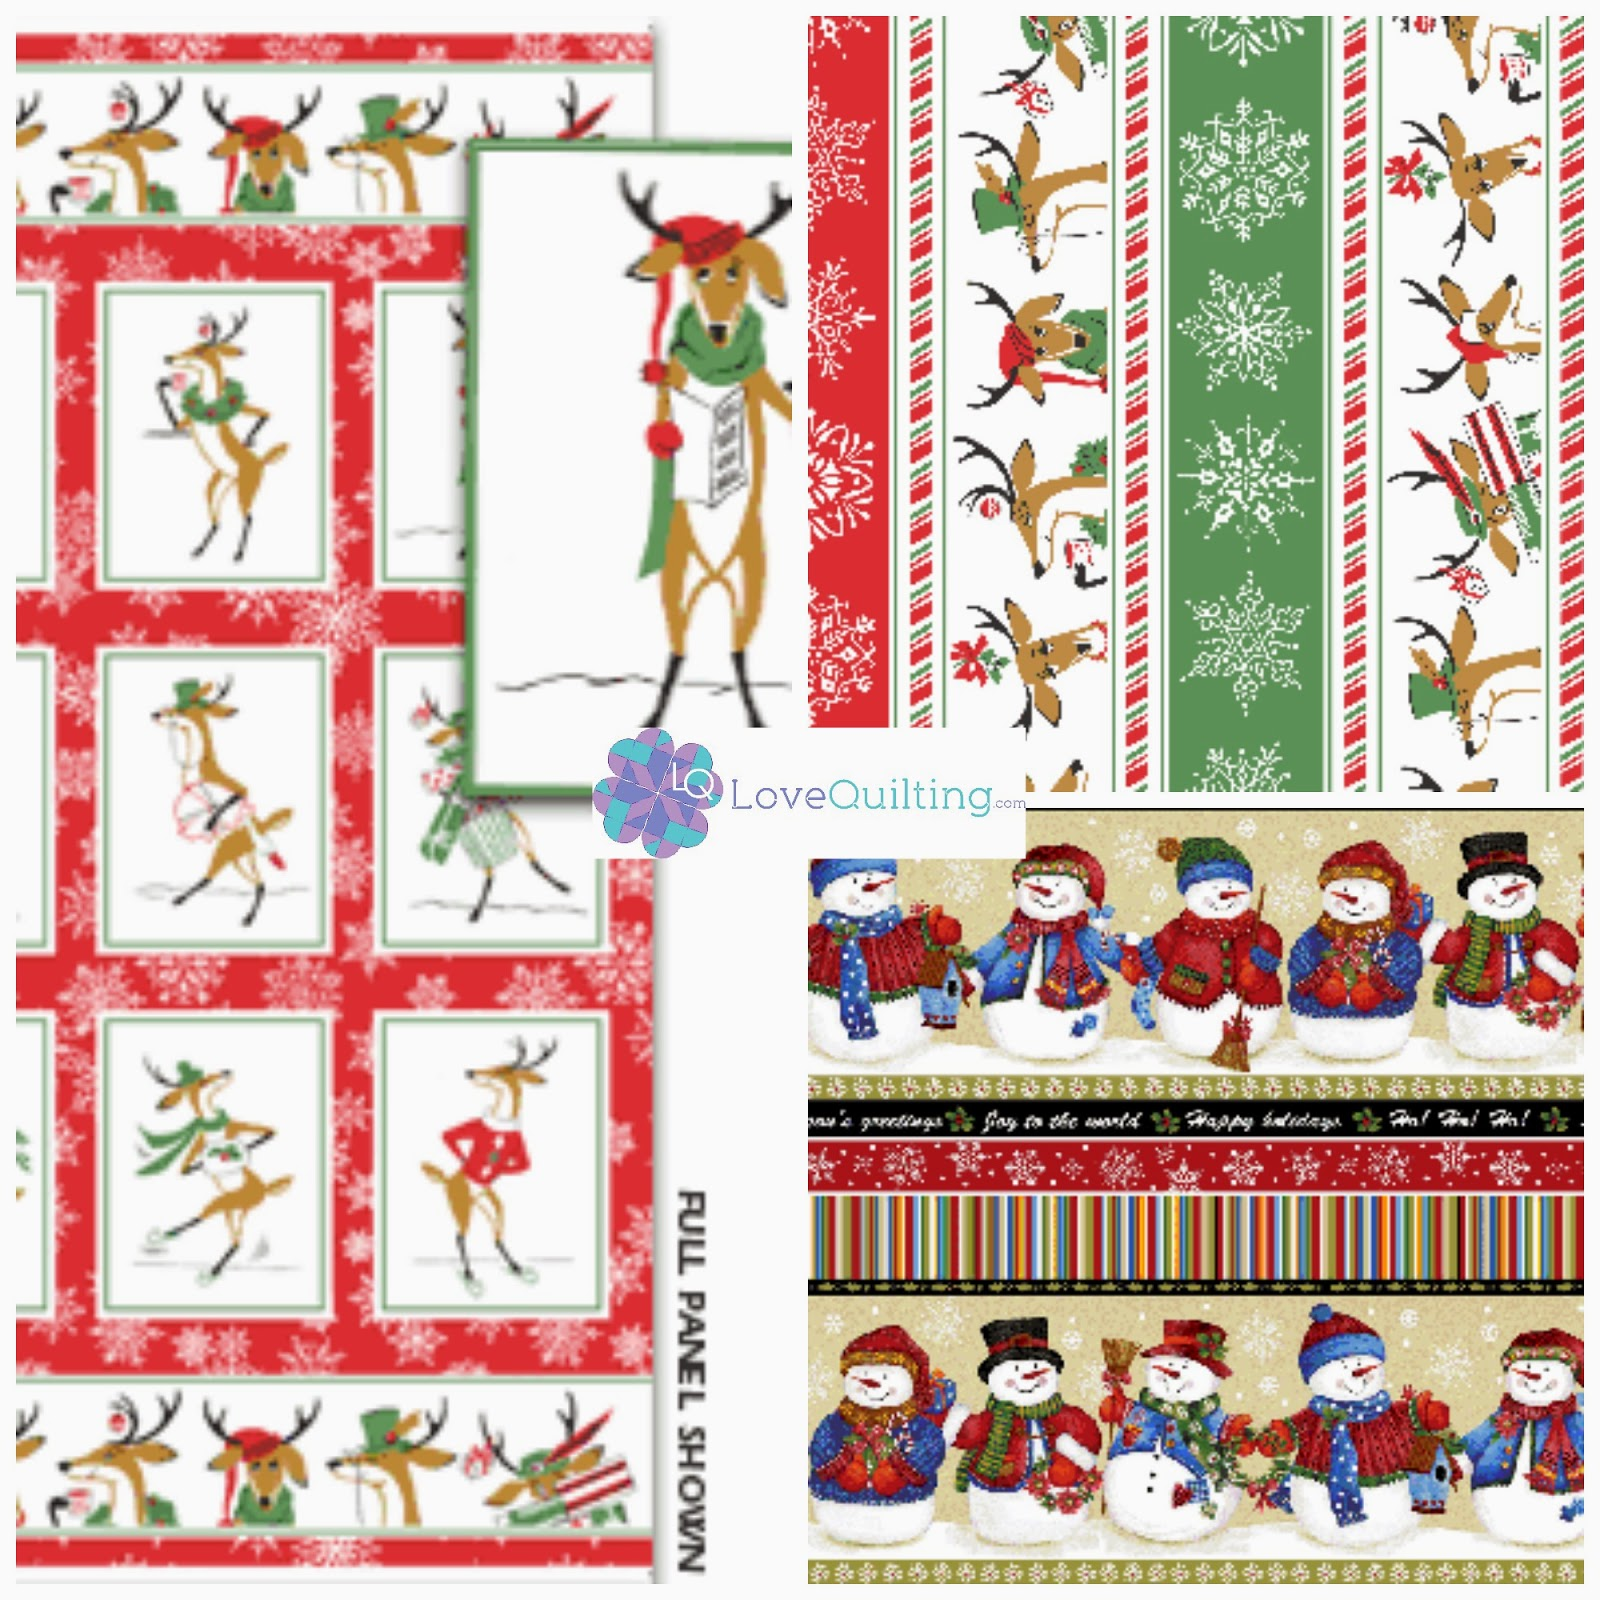 http://www.lovequilting.com/product-category/fabric/page/4/?filtering=1&filter_theme=194